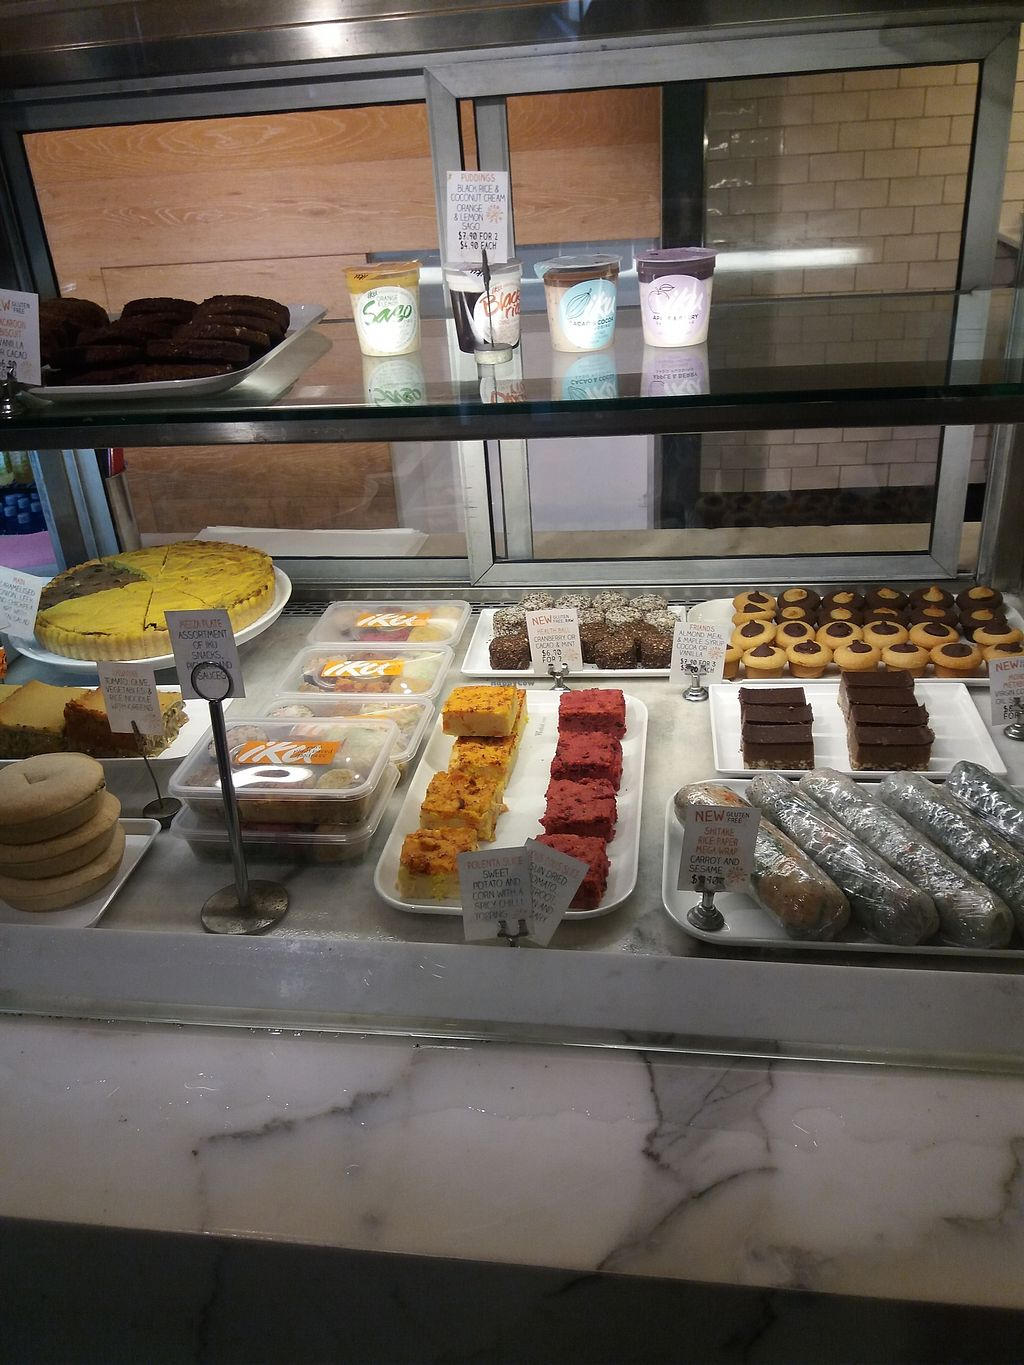 """Photo of Iku Wholefoods Kitchen - Westfield Plaza  by <a href=""""/members/profile/veganvirtues"""">veganvirtues</a> <br/>More delicious goodies <br/> March 12, 2018  - <a href='/contact/abuse/image/26685/369532'>Report</a>"""